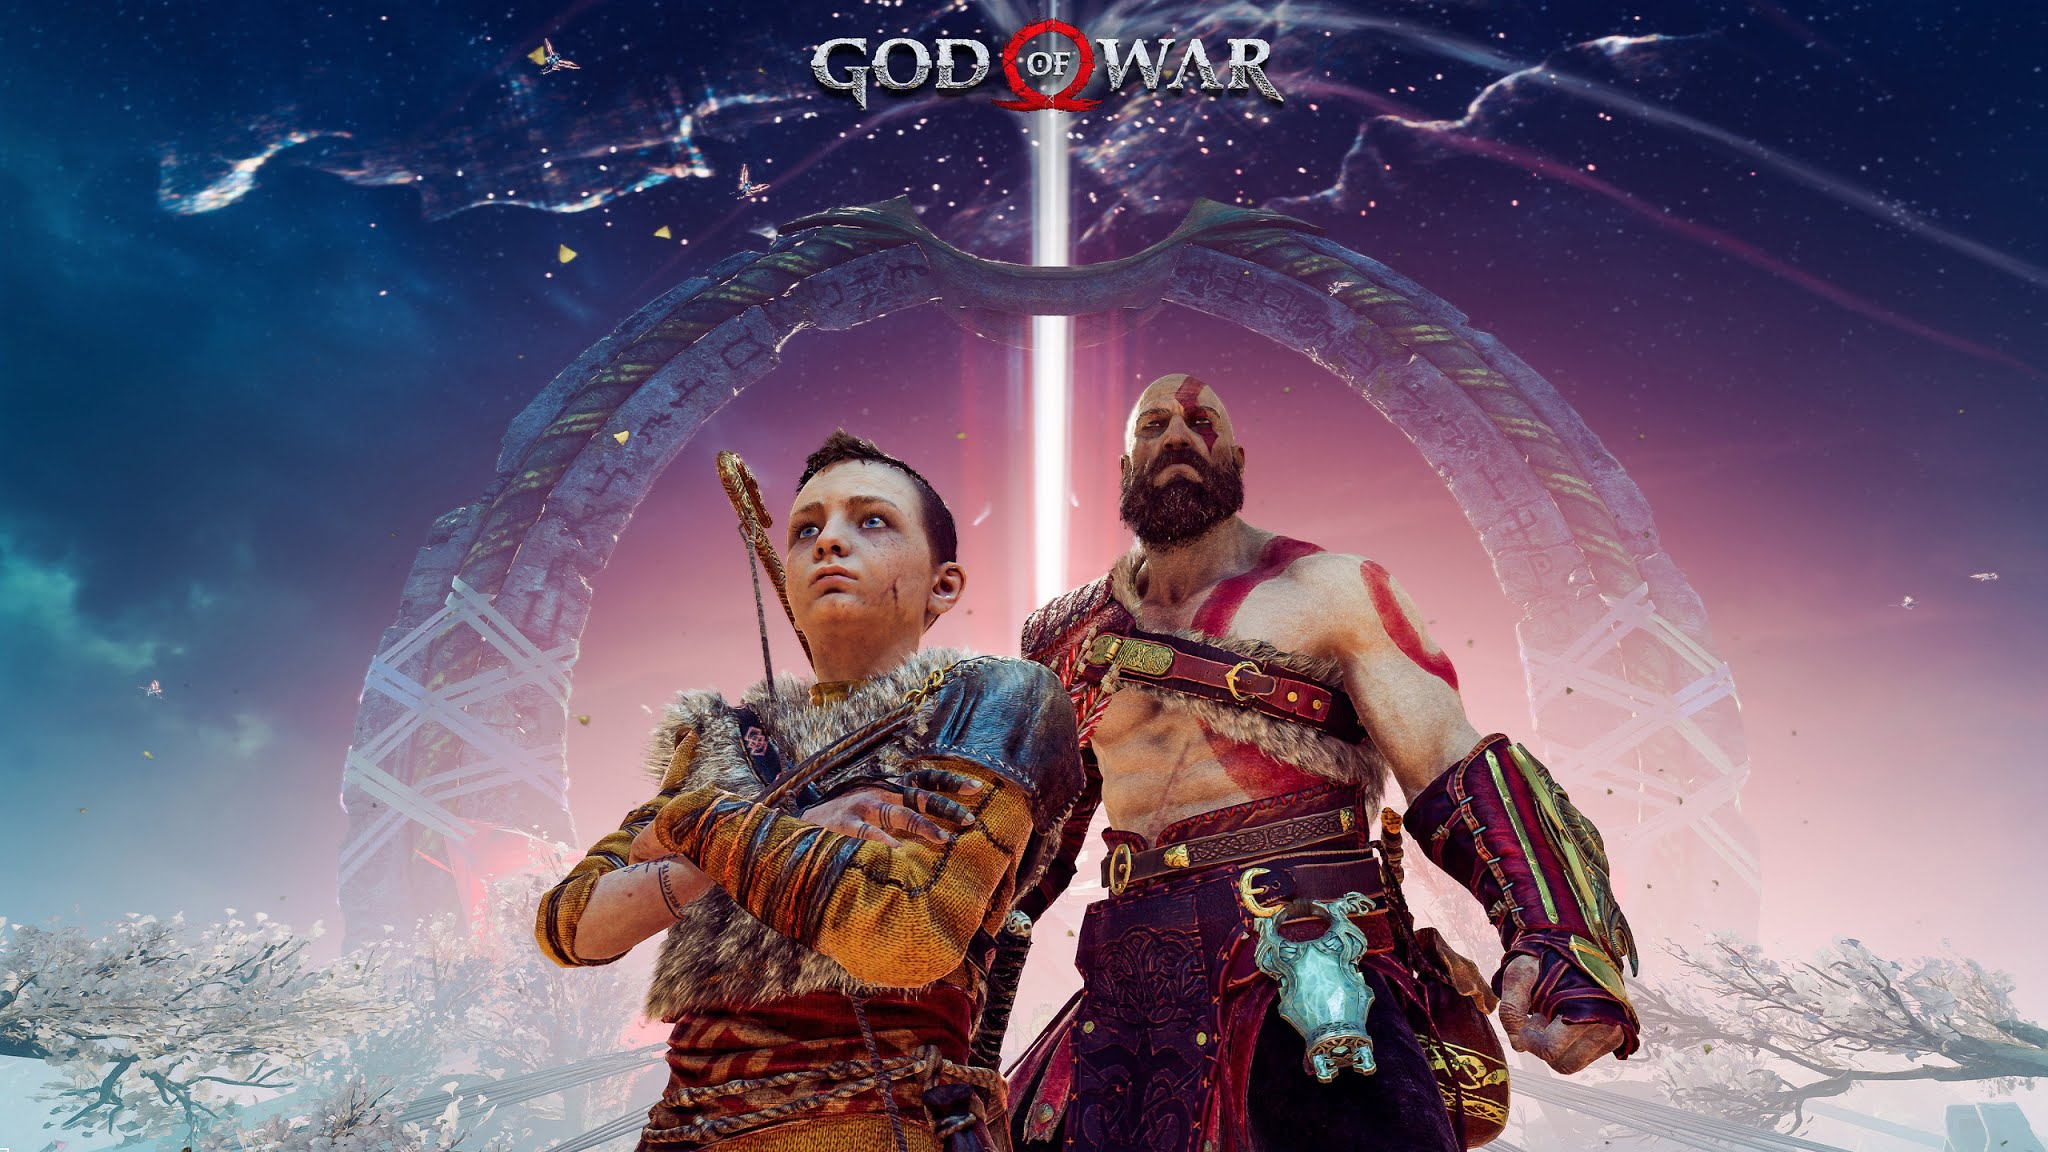 God of War Sequel Release Date and Gameplay Rumors